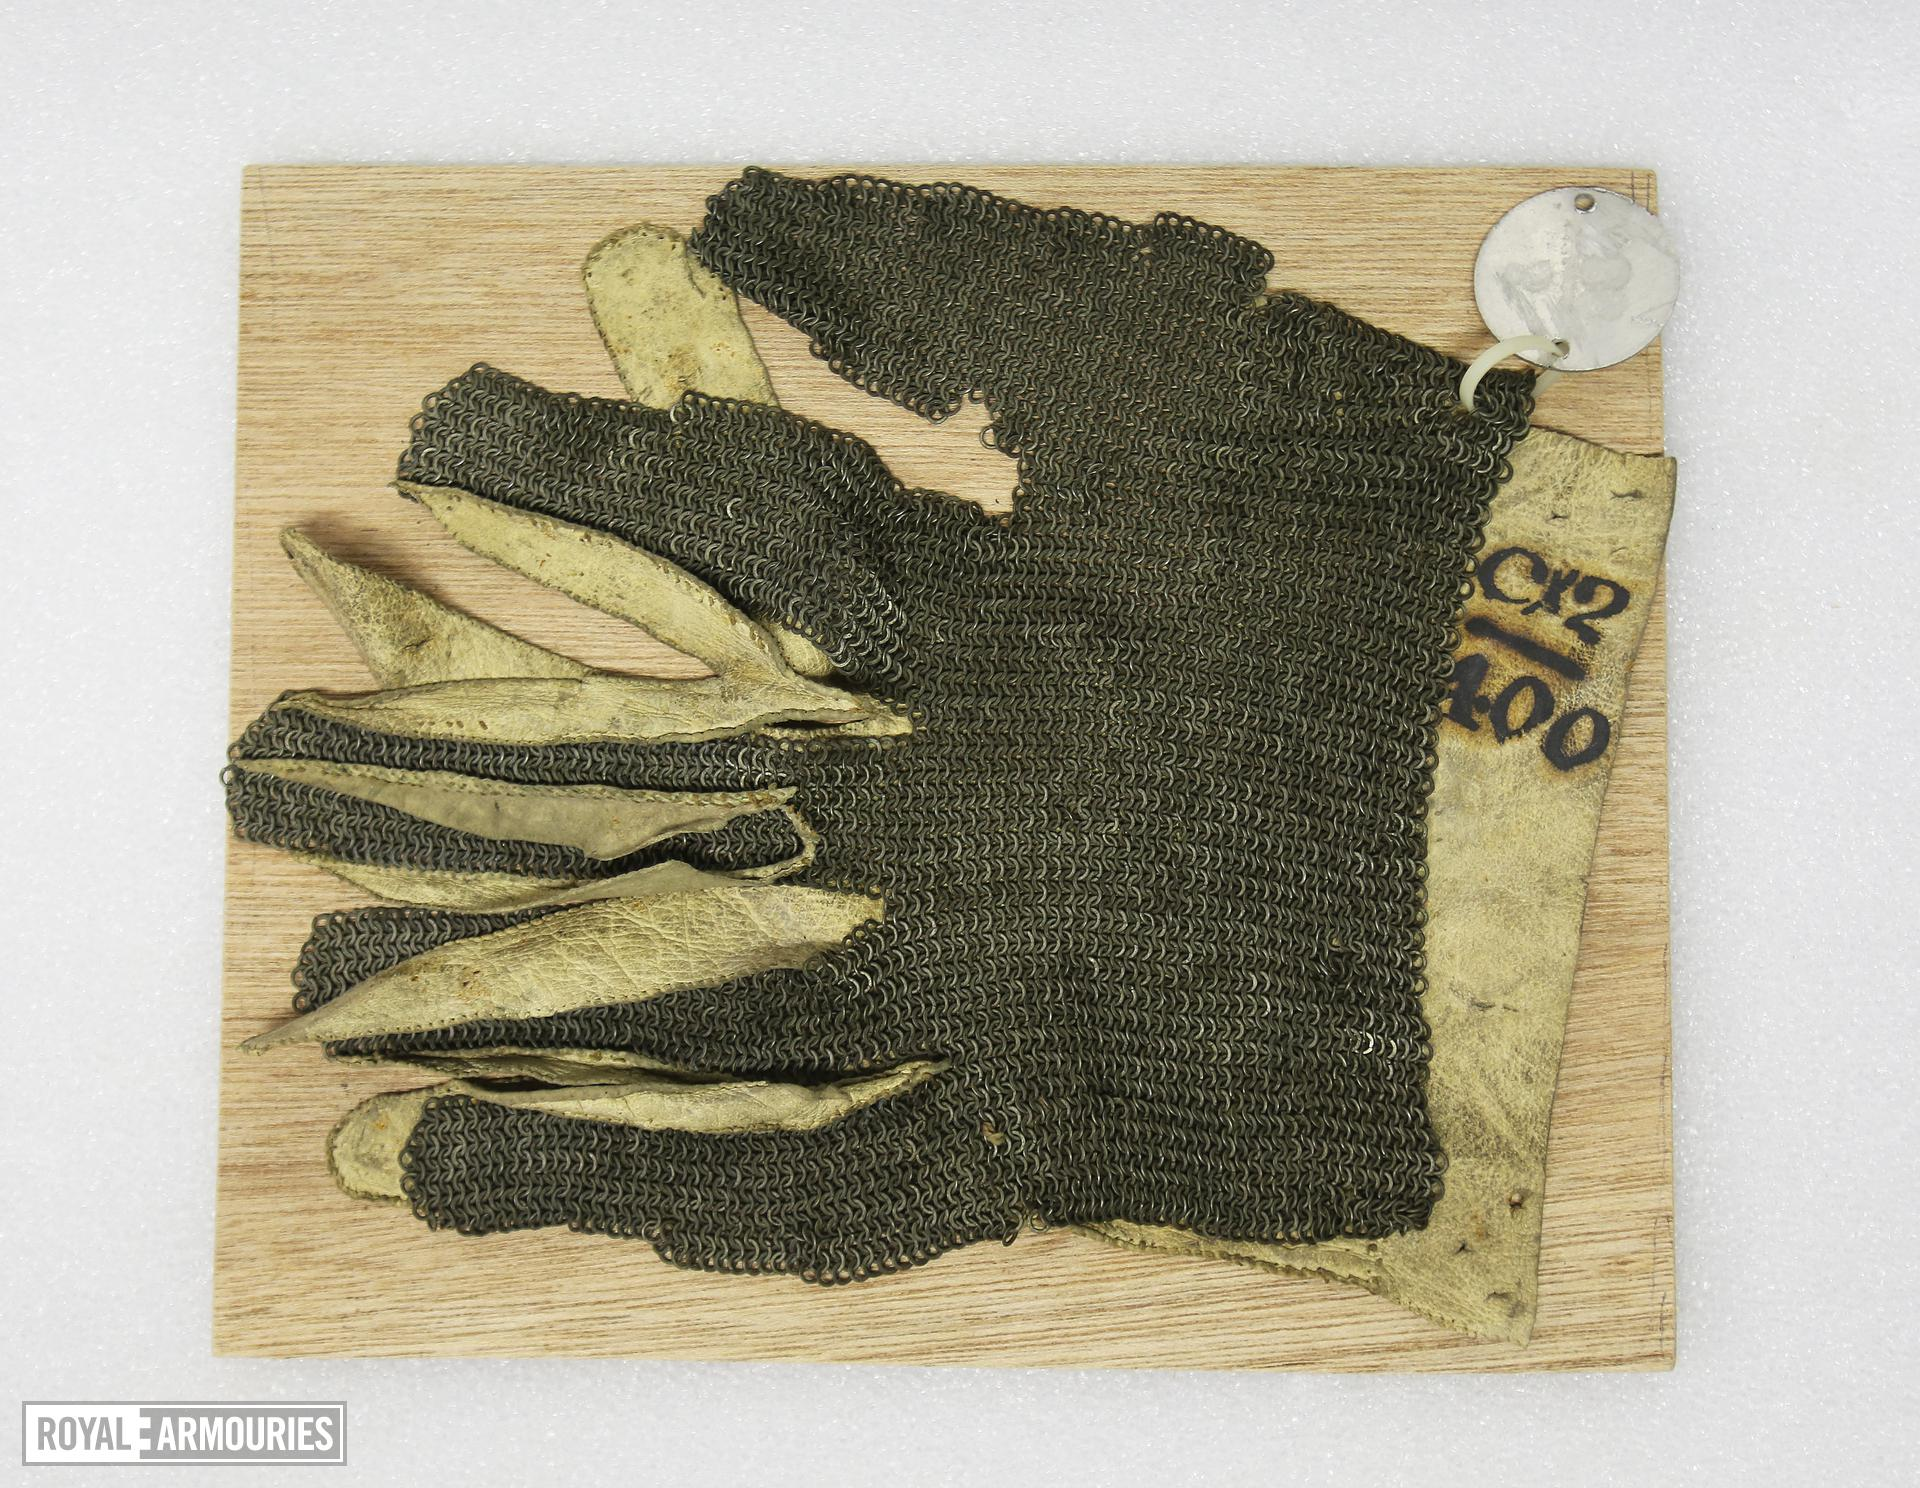 Mail gauntlet fragment. Fine mail covering for a duelling glove. III.788